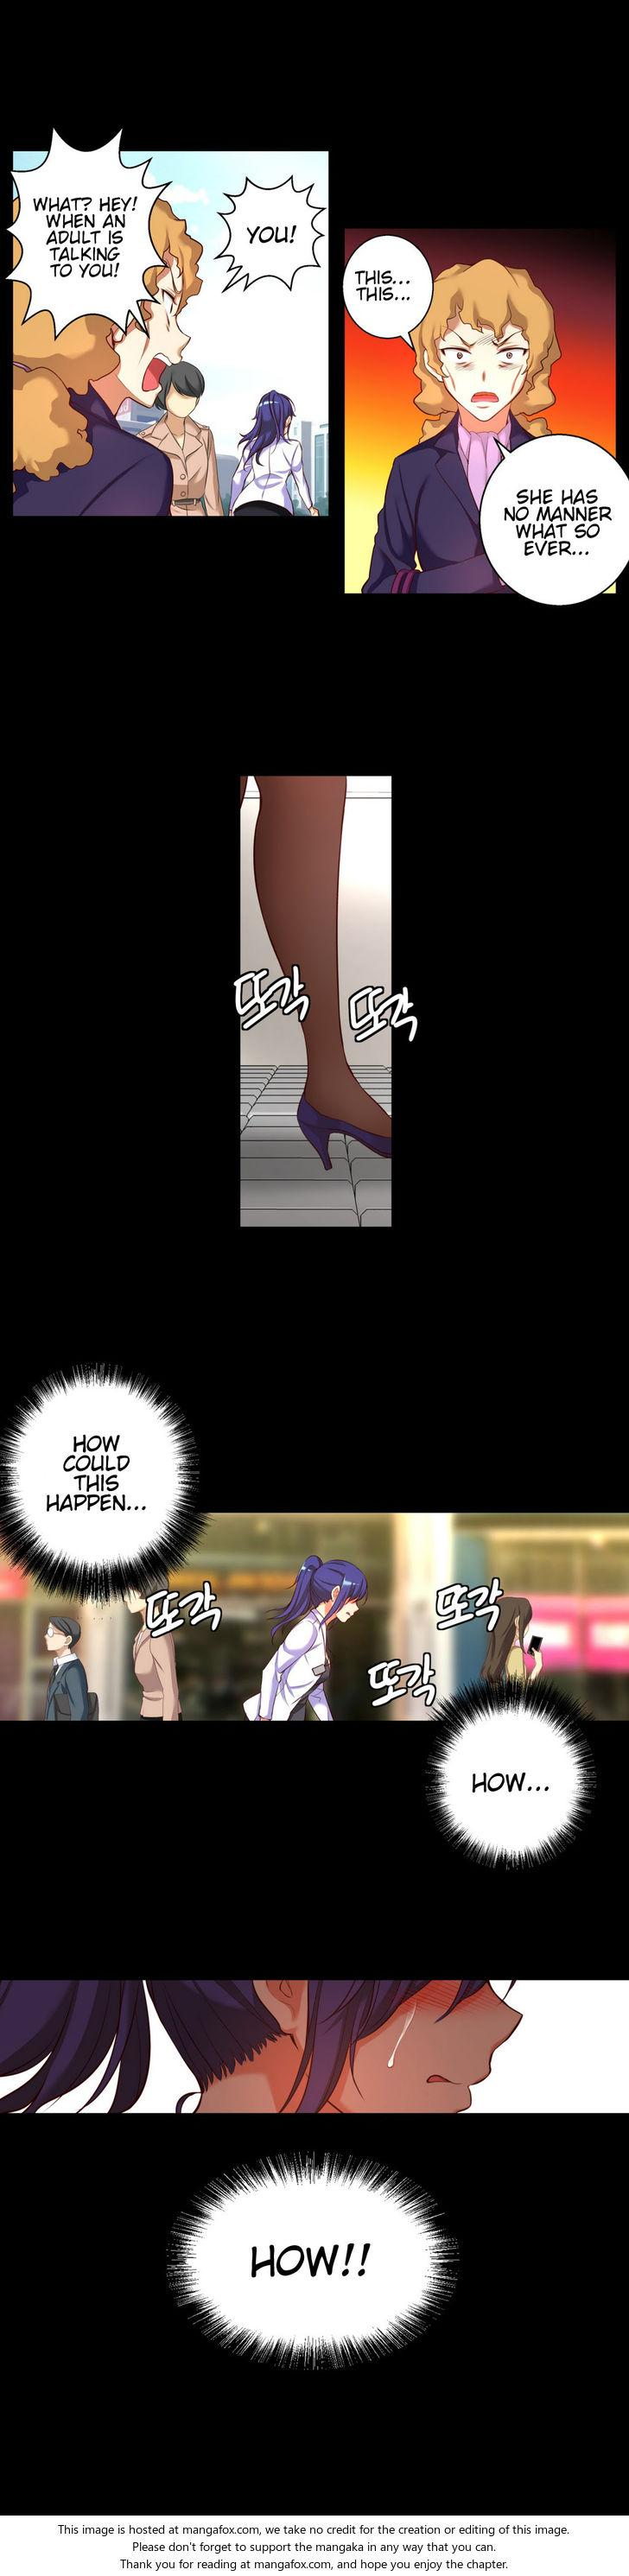 [Donggul Gom] She is Young (English) Part 1/2 233